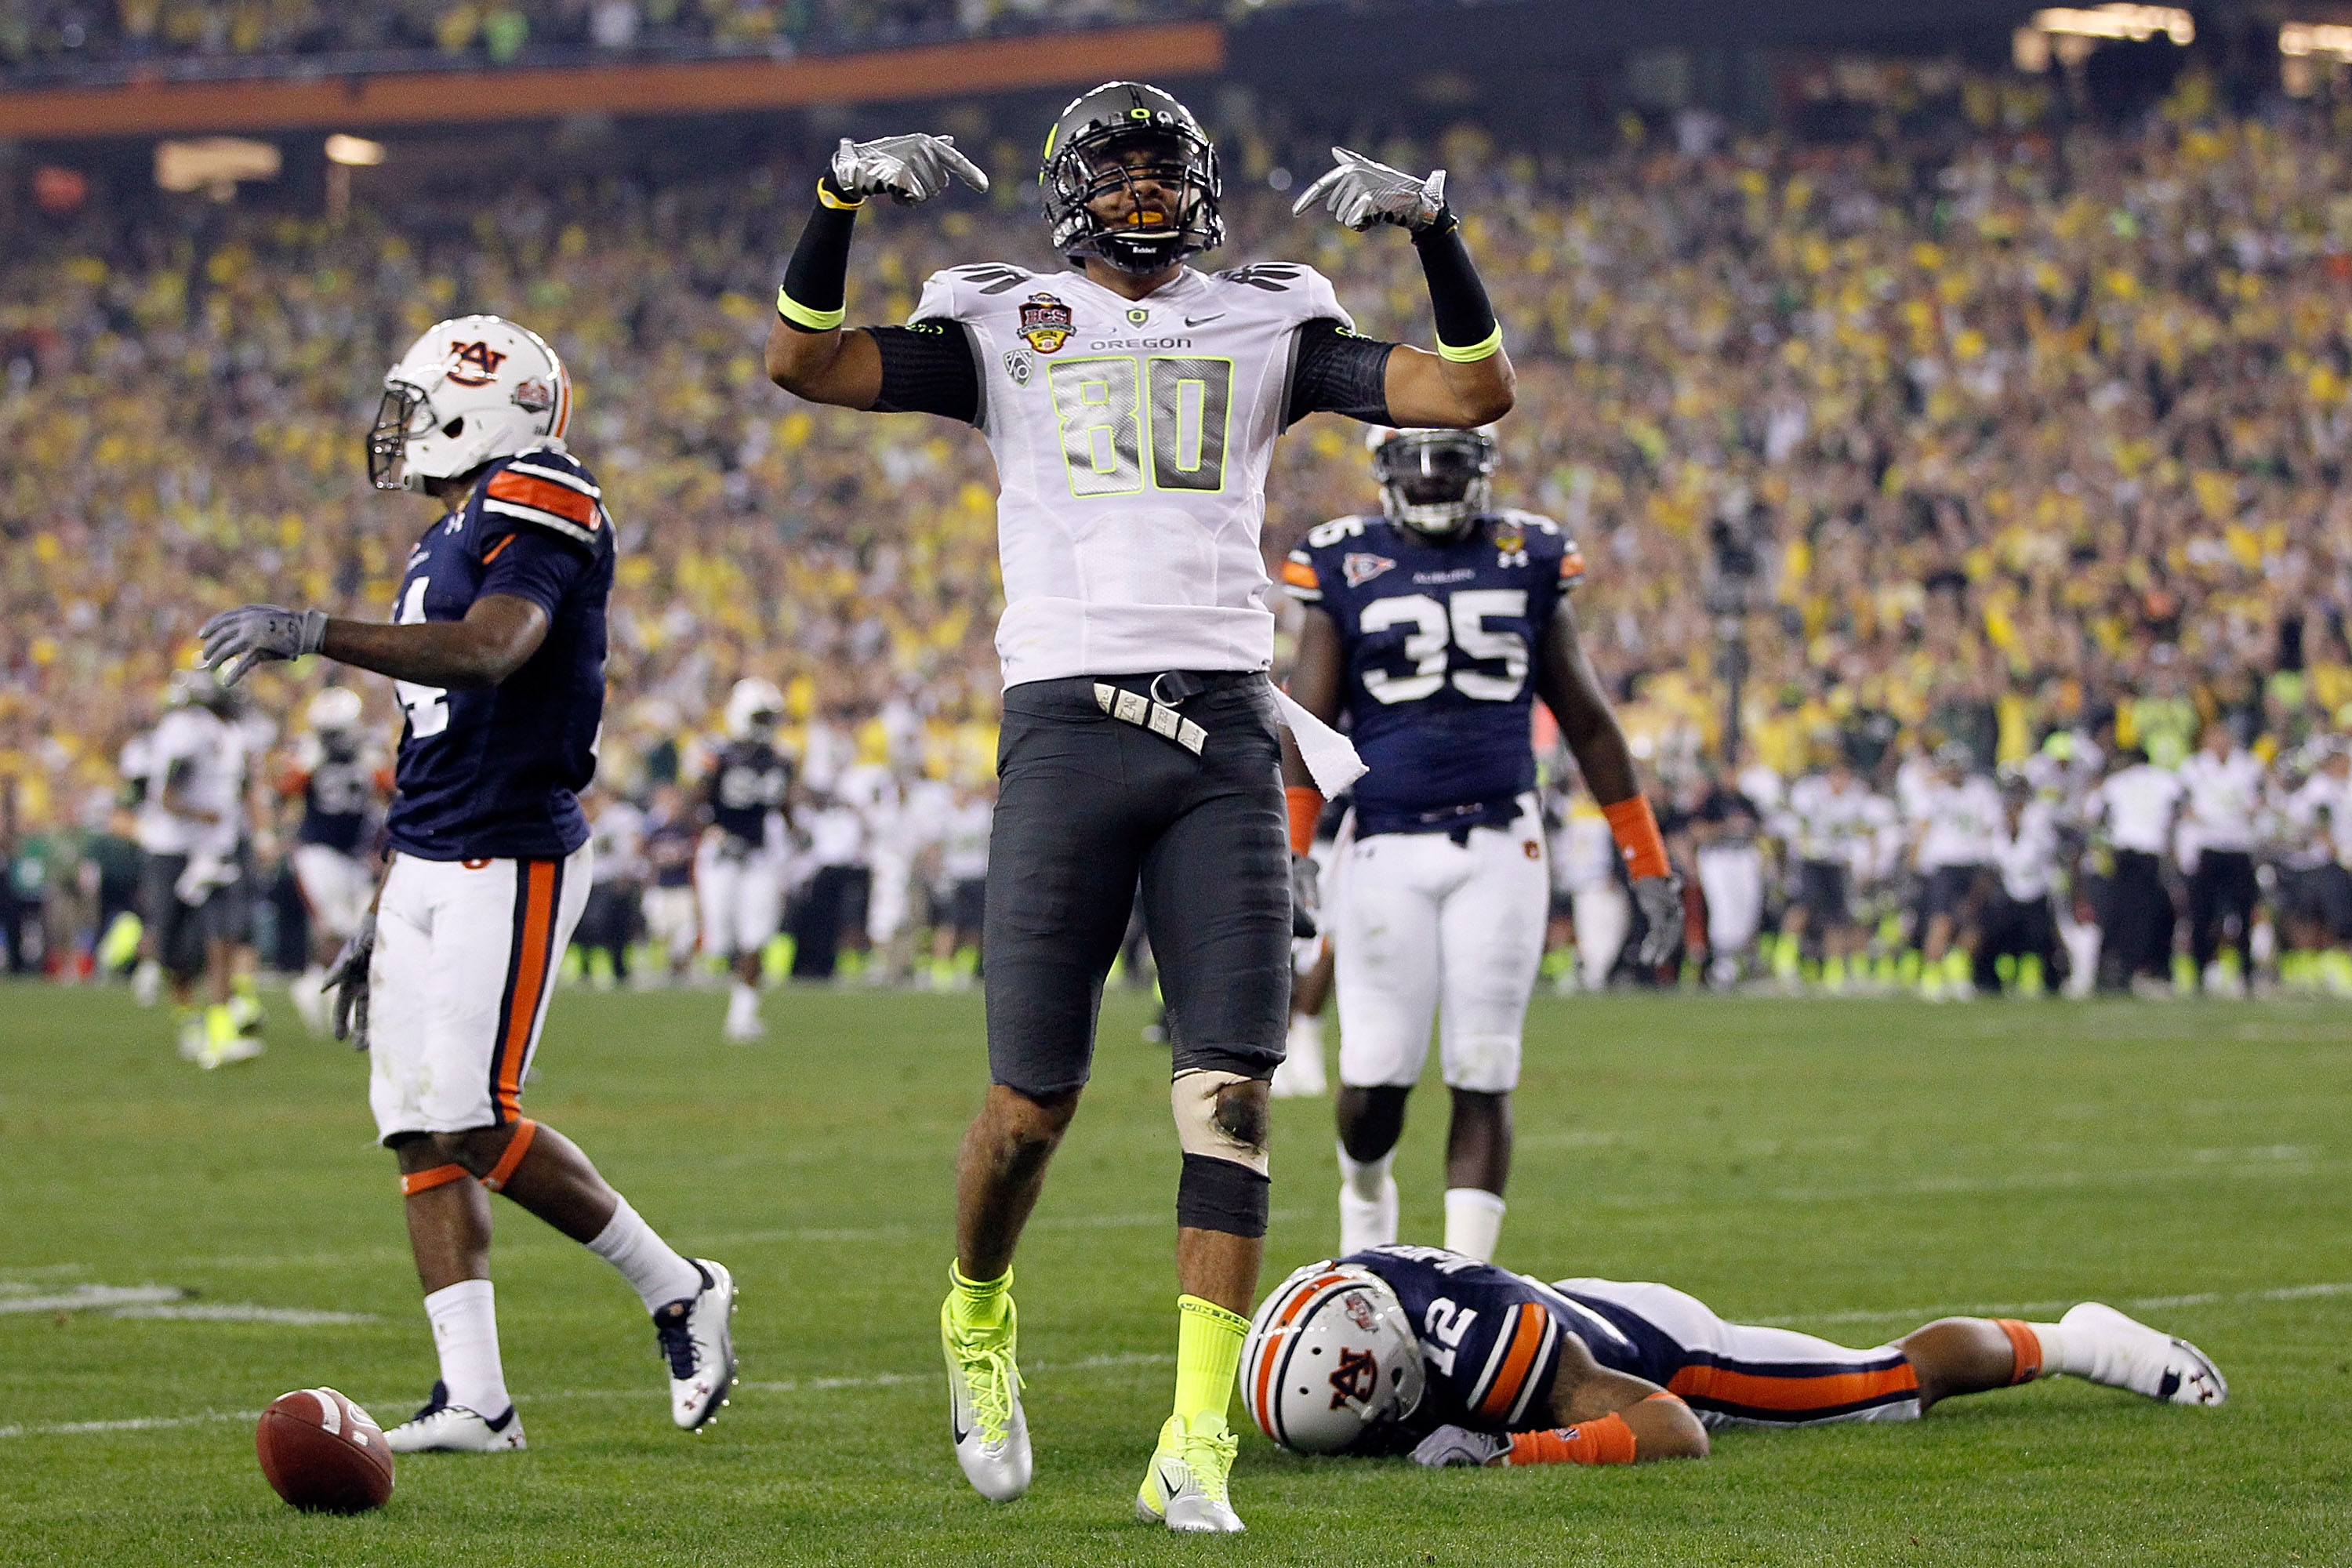 GLENDALE, AZ - JANUARY 10:  Lavasier Tuinei #80 of the Oregon Ducks celebrates a a catch against the Auburn Tigers during the Tostitos BCS National Championship Game at University of Phoenix Stadium on January 10, 2011 in Glendale, Arizona.  (Photo by Kev